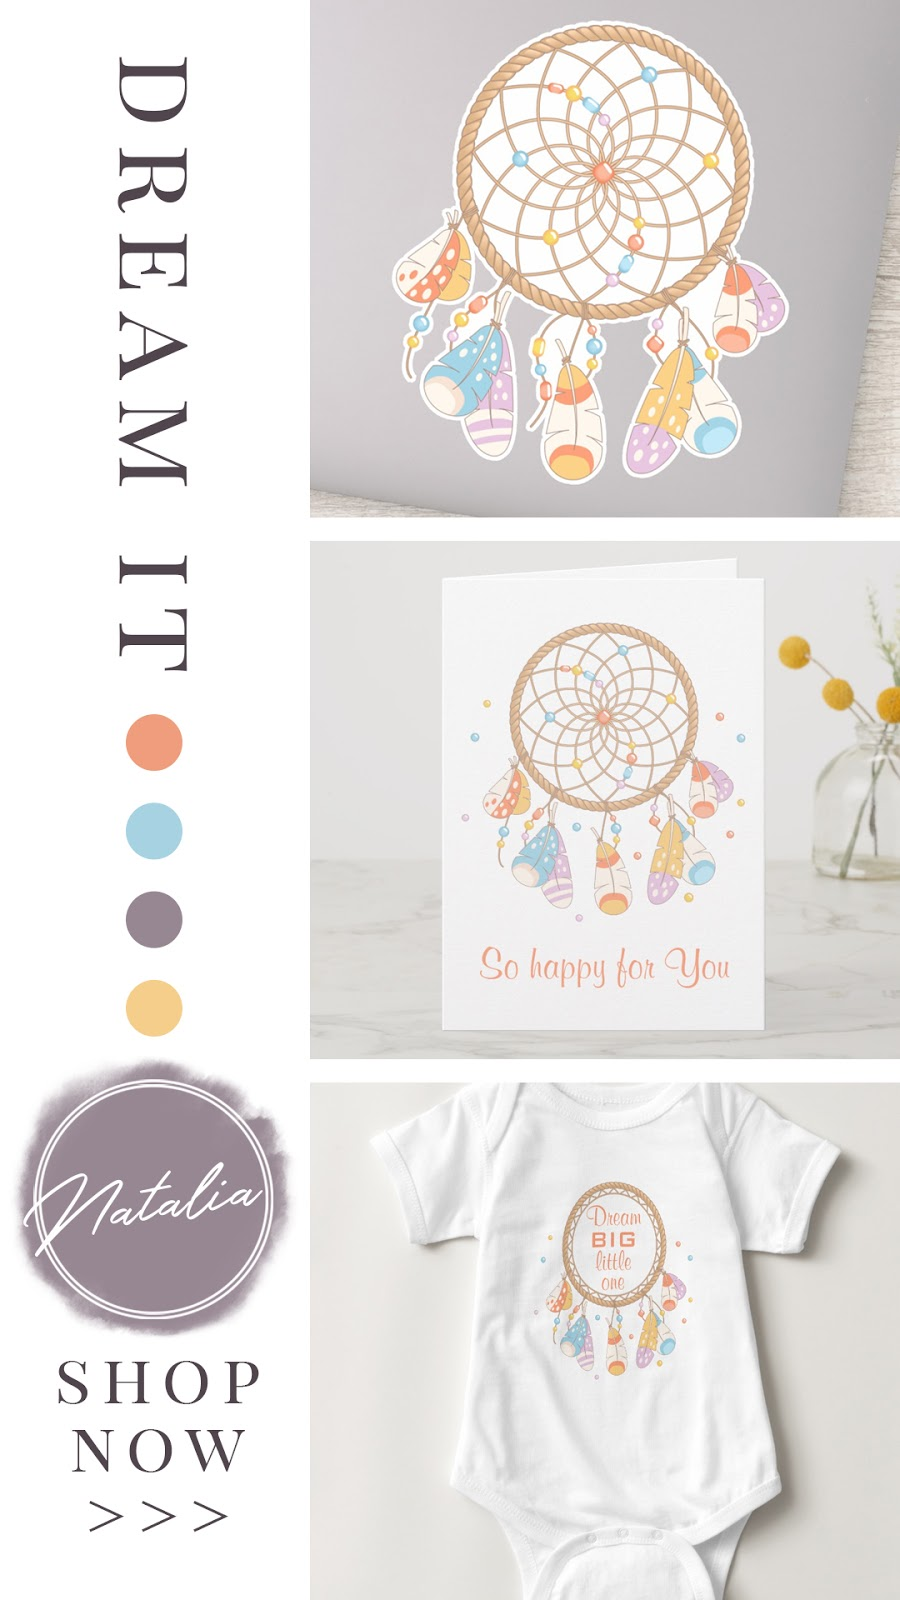 Boho chic dreamcatcher baby shower and birthday collection. Featuring personalized cards, vinyl stickers, gifts, and custom baby apparel. In a yellow, purple, orange, and blue color palette.